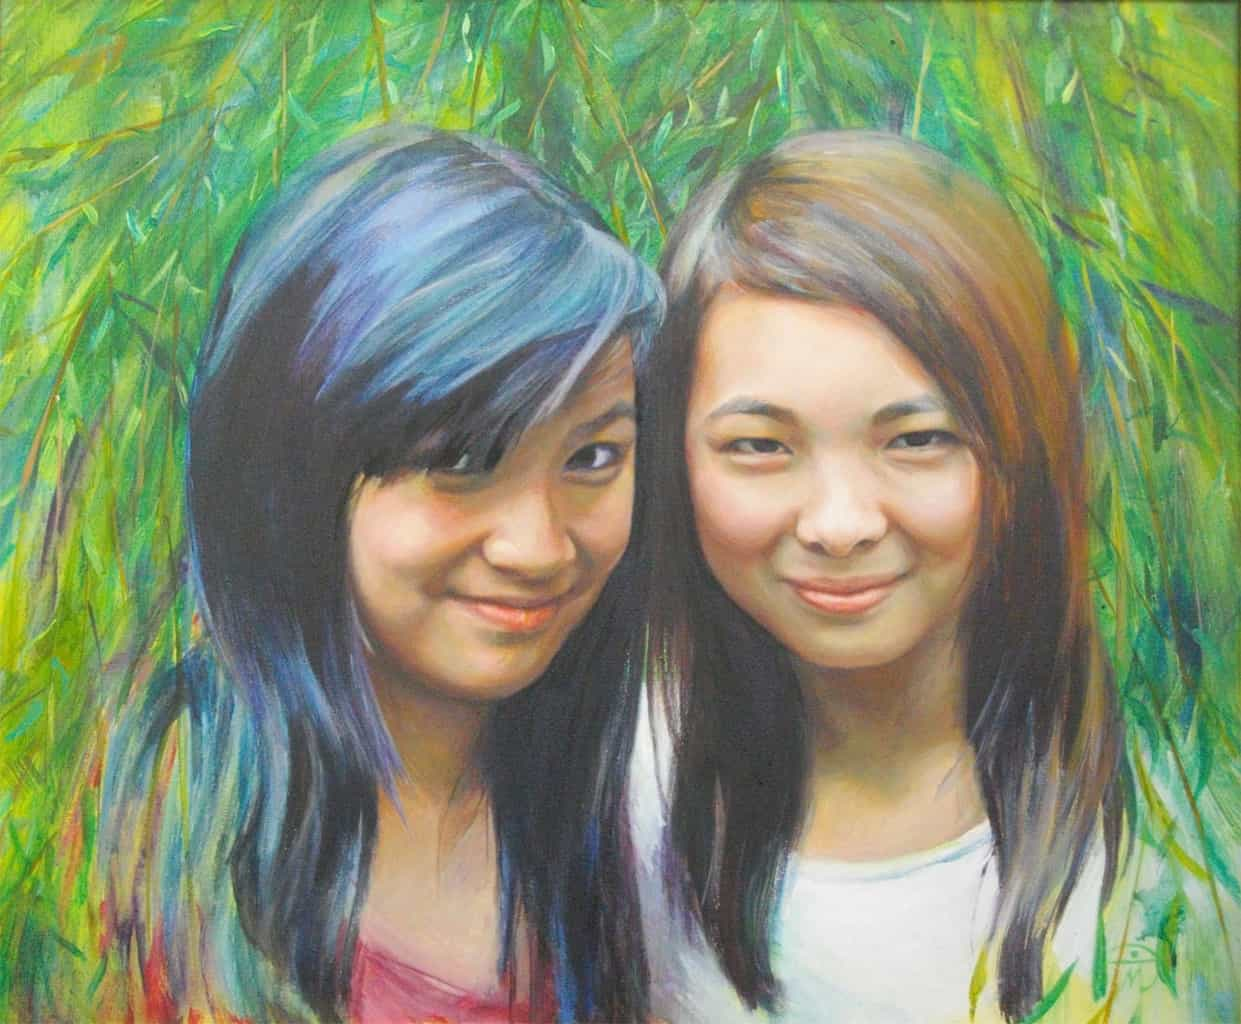 Portrait of Emma and Mia. Acrylic on canvas. Portrait commission painting by Marina Kim